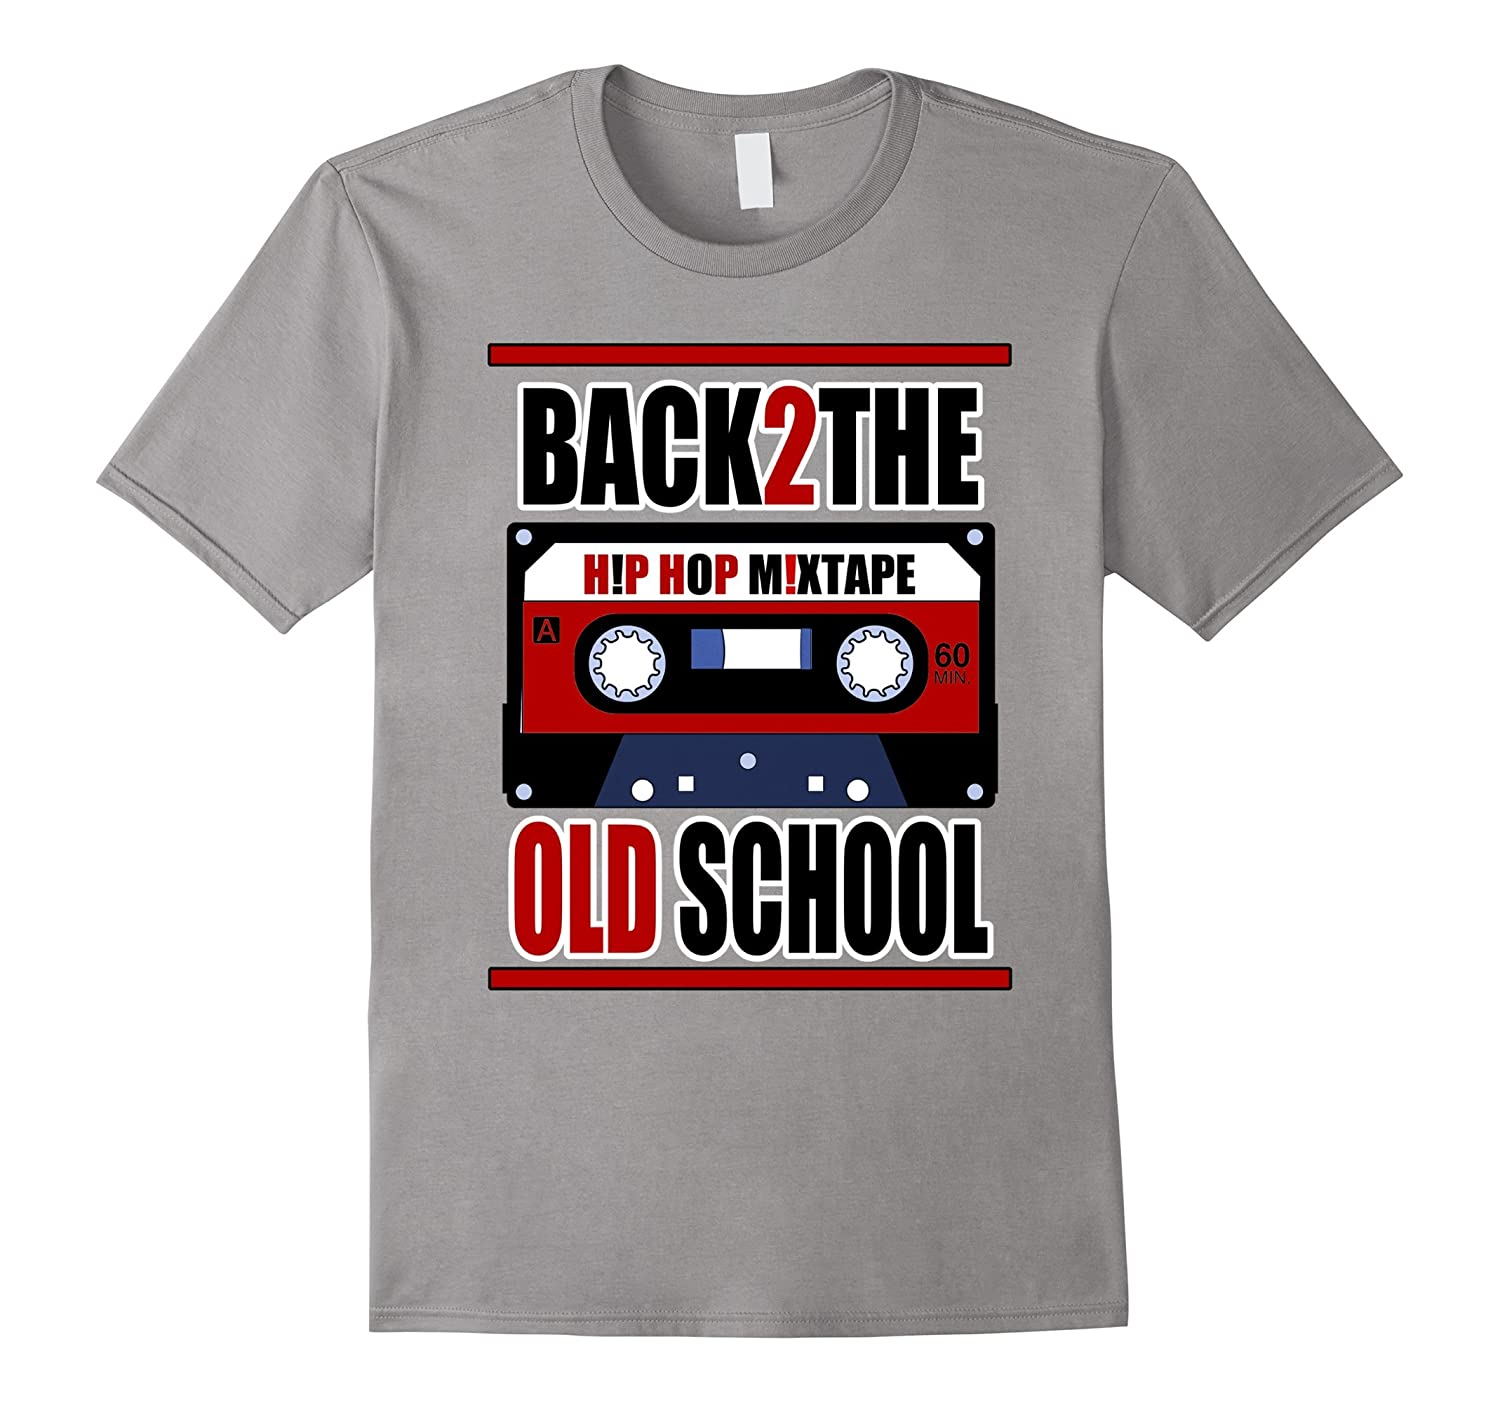 BACK 2 THE OLD SCHOOL T-SHIRT HIP HOP MIXTAPE-Vaci